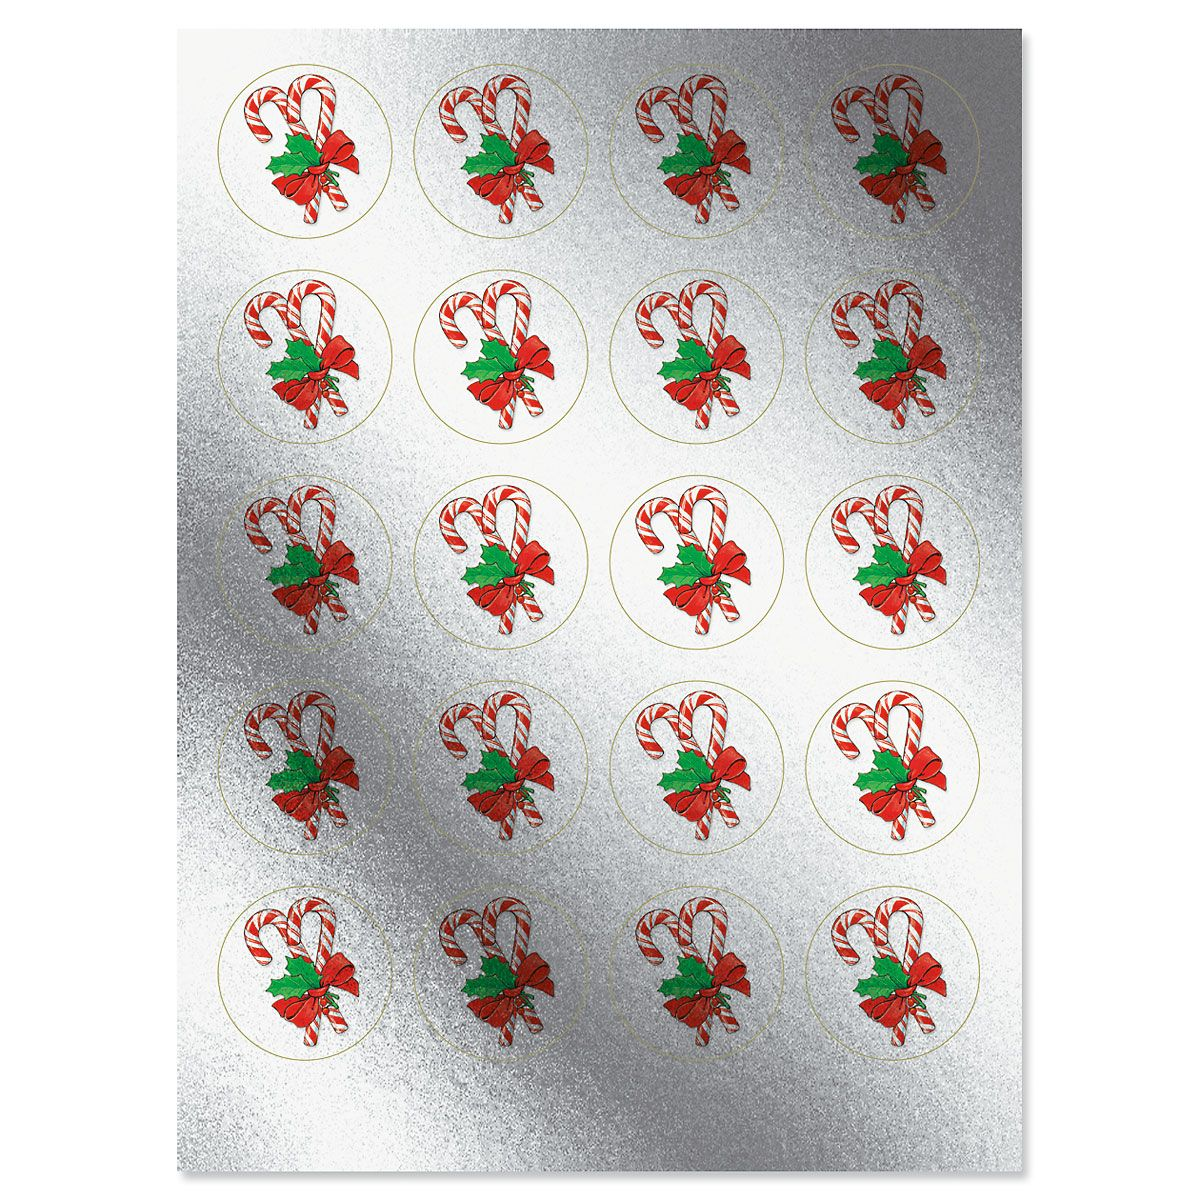 Foil Candy Canes Stickers